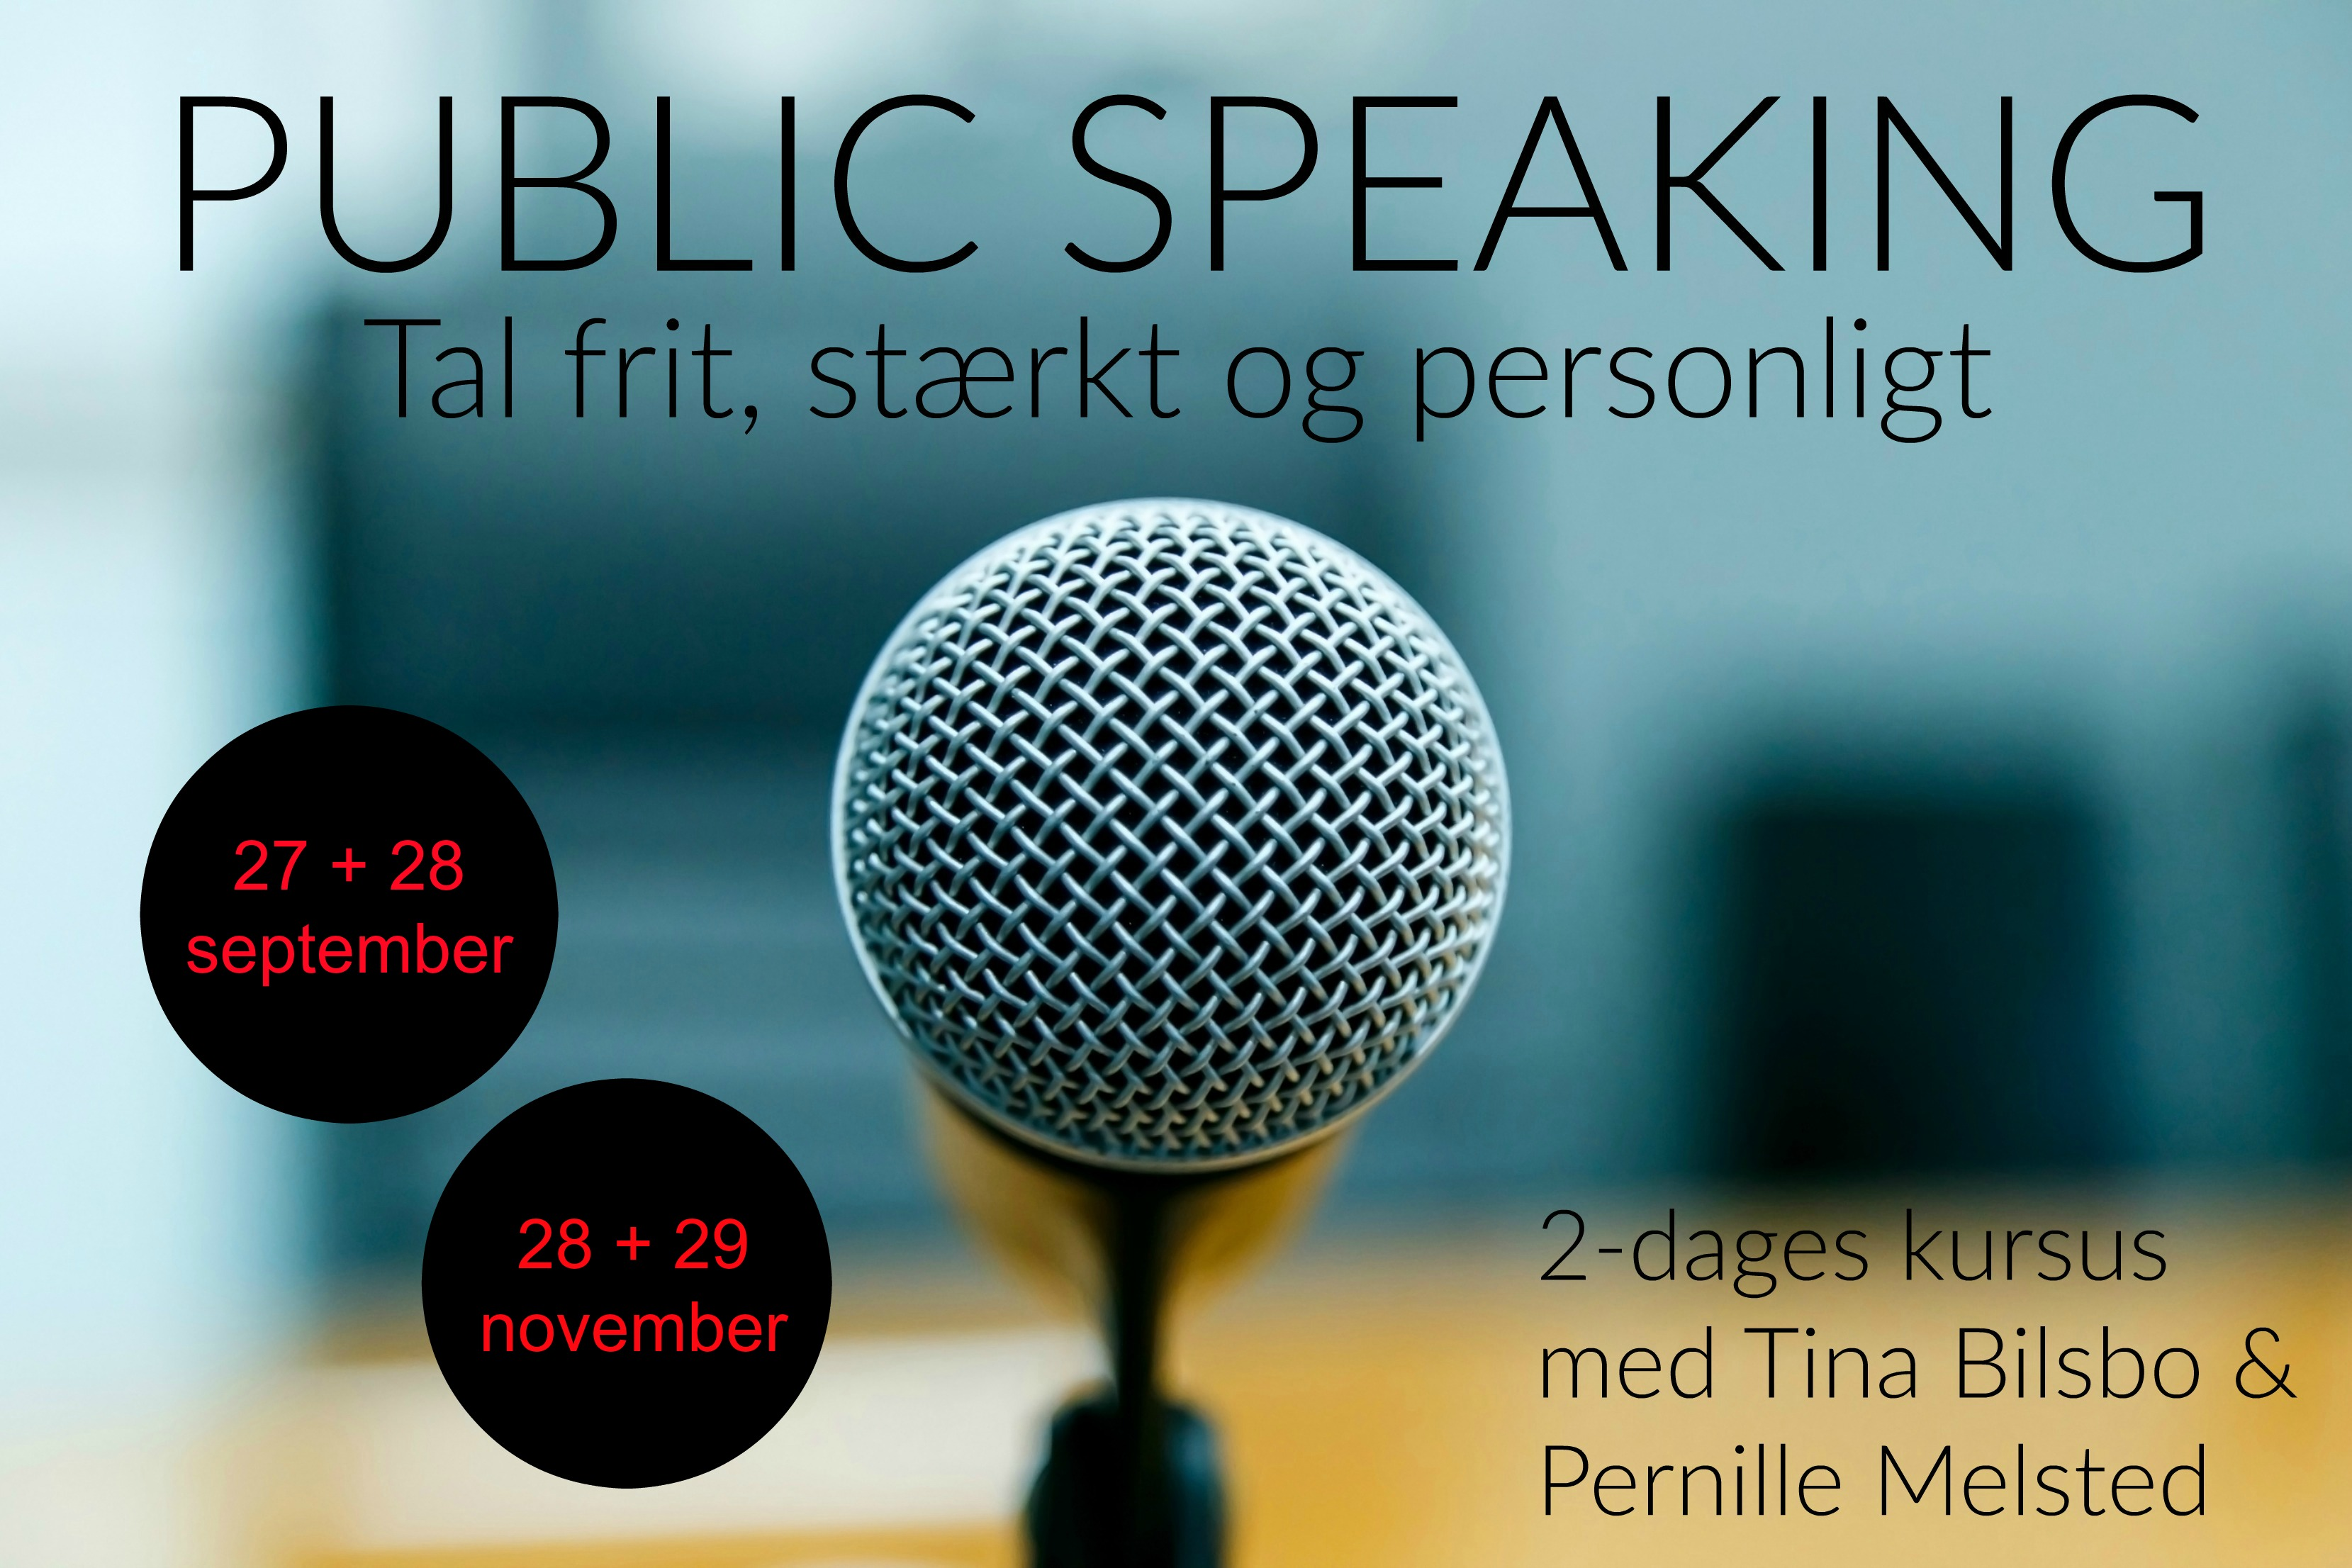 PUBLIC-SPEAKING2datoer